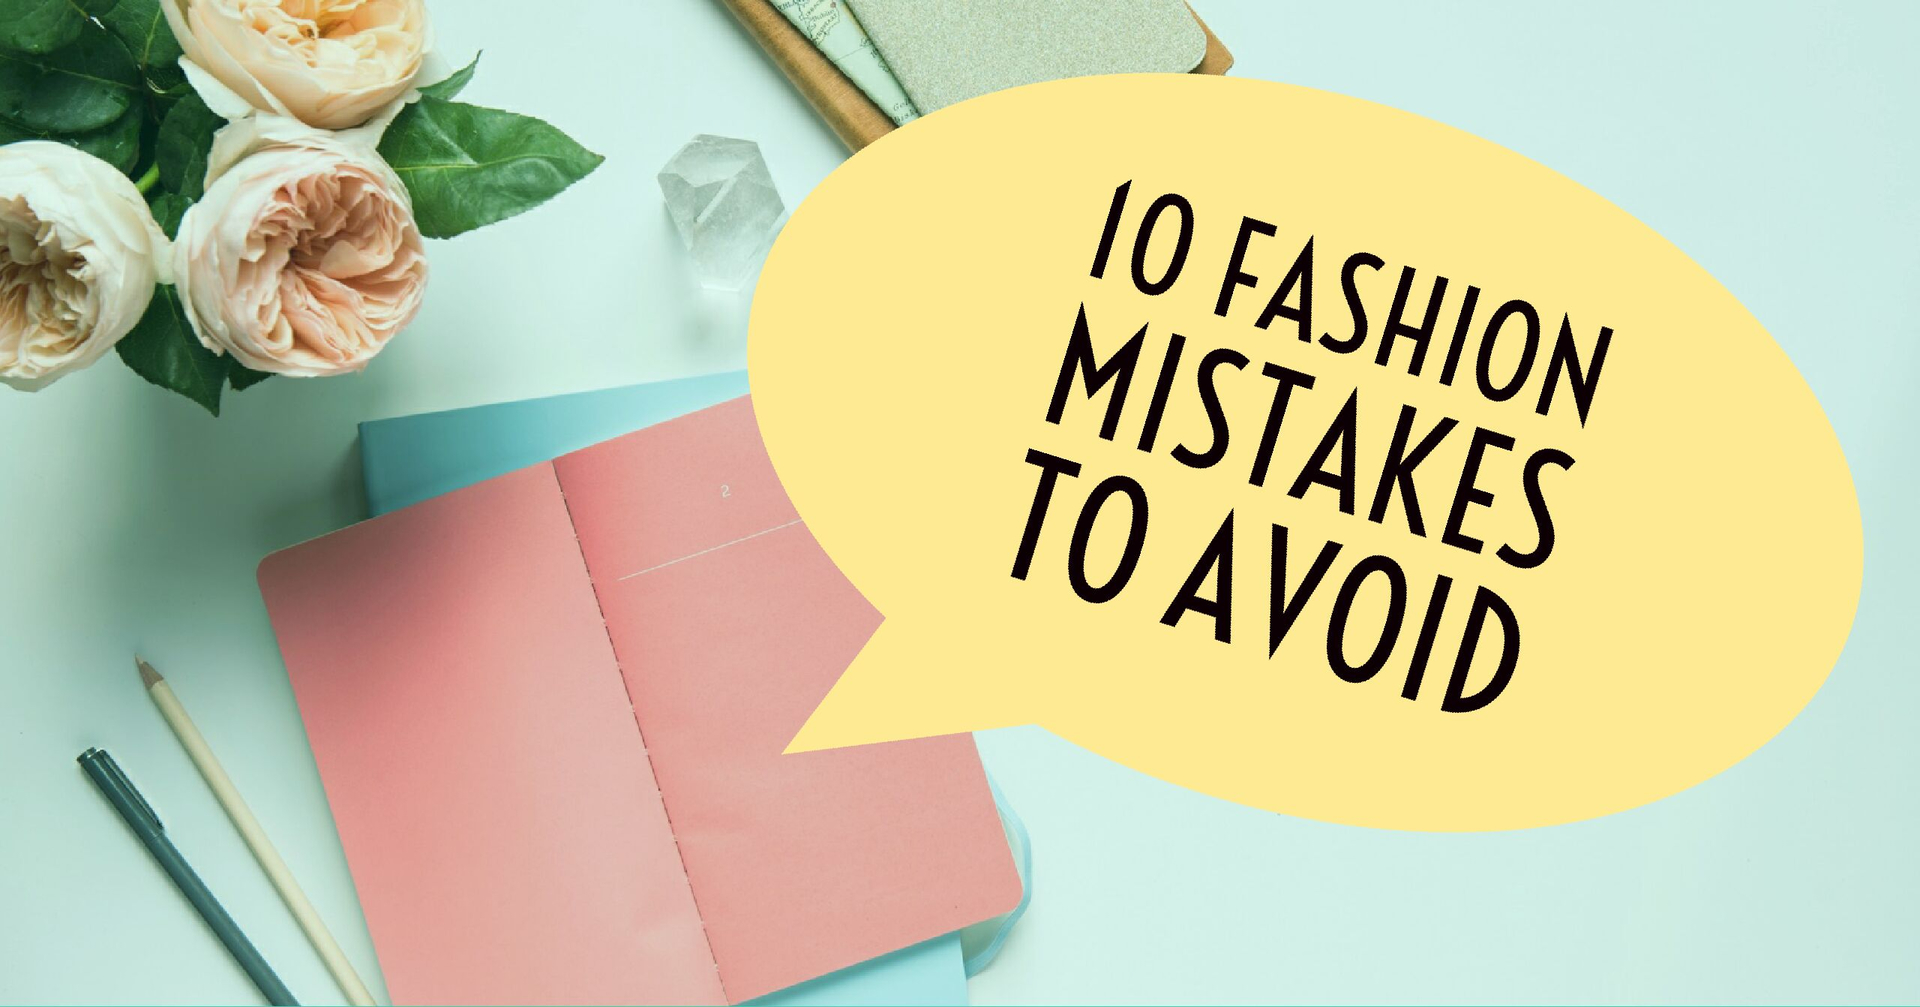 10 Fashion Mistakes To Avoid image